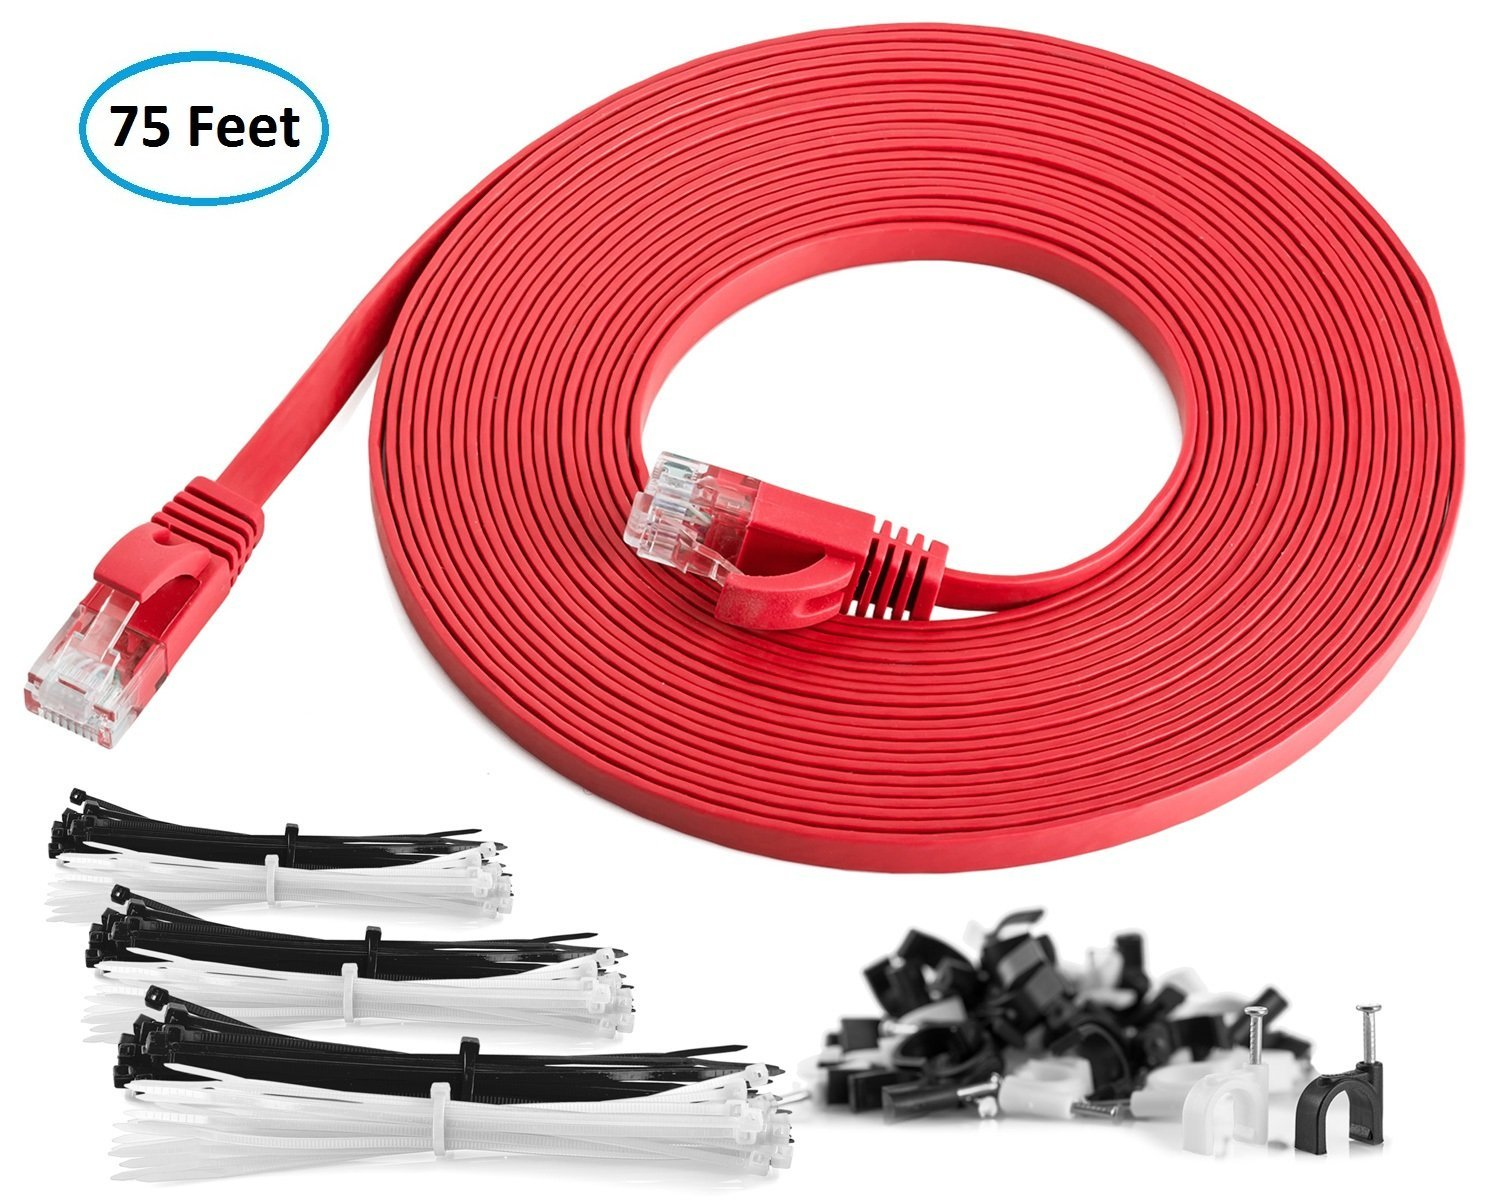 Cat6 Flat Ethernet Patch Cable 75 Feet High Speed Internet Lan Catalog Product Computer Cables With Snagless